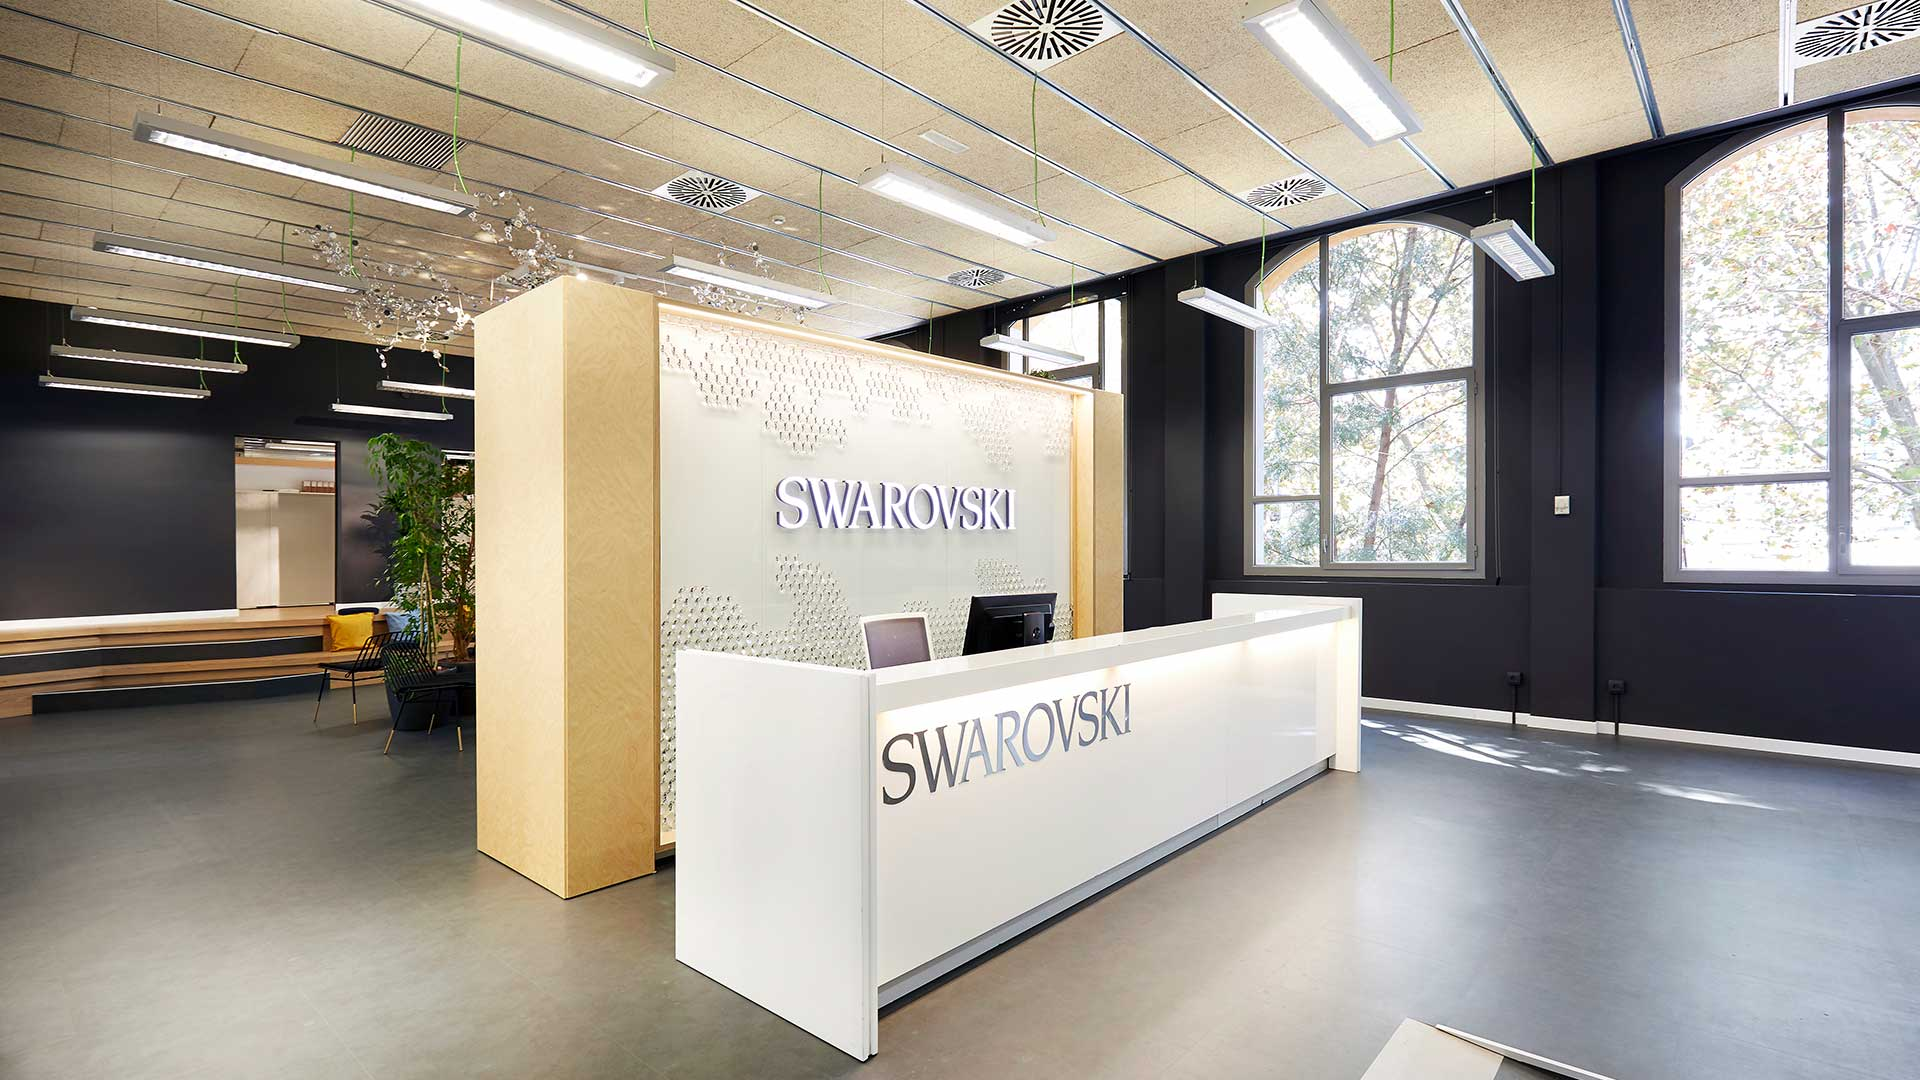 Swarovski corporate offices – Barcelona